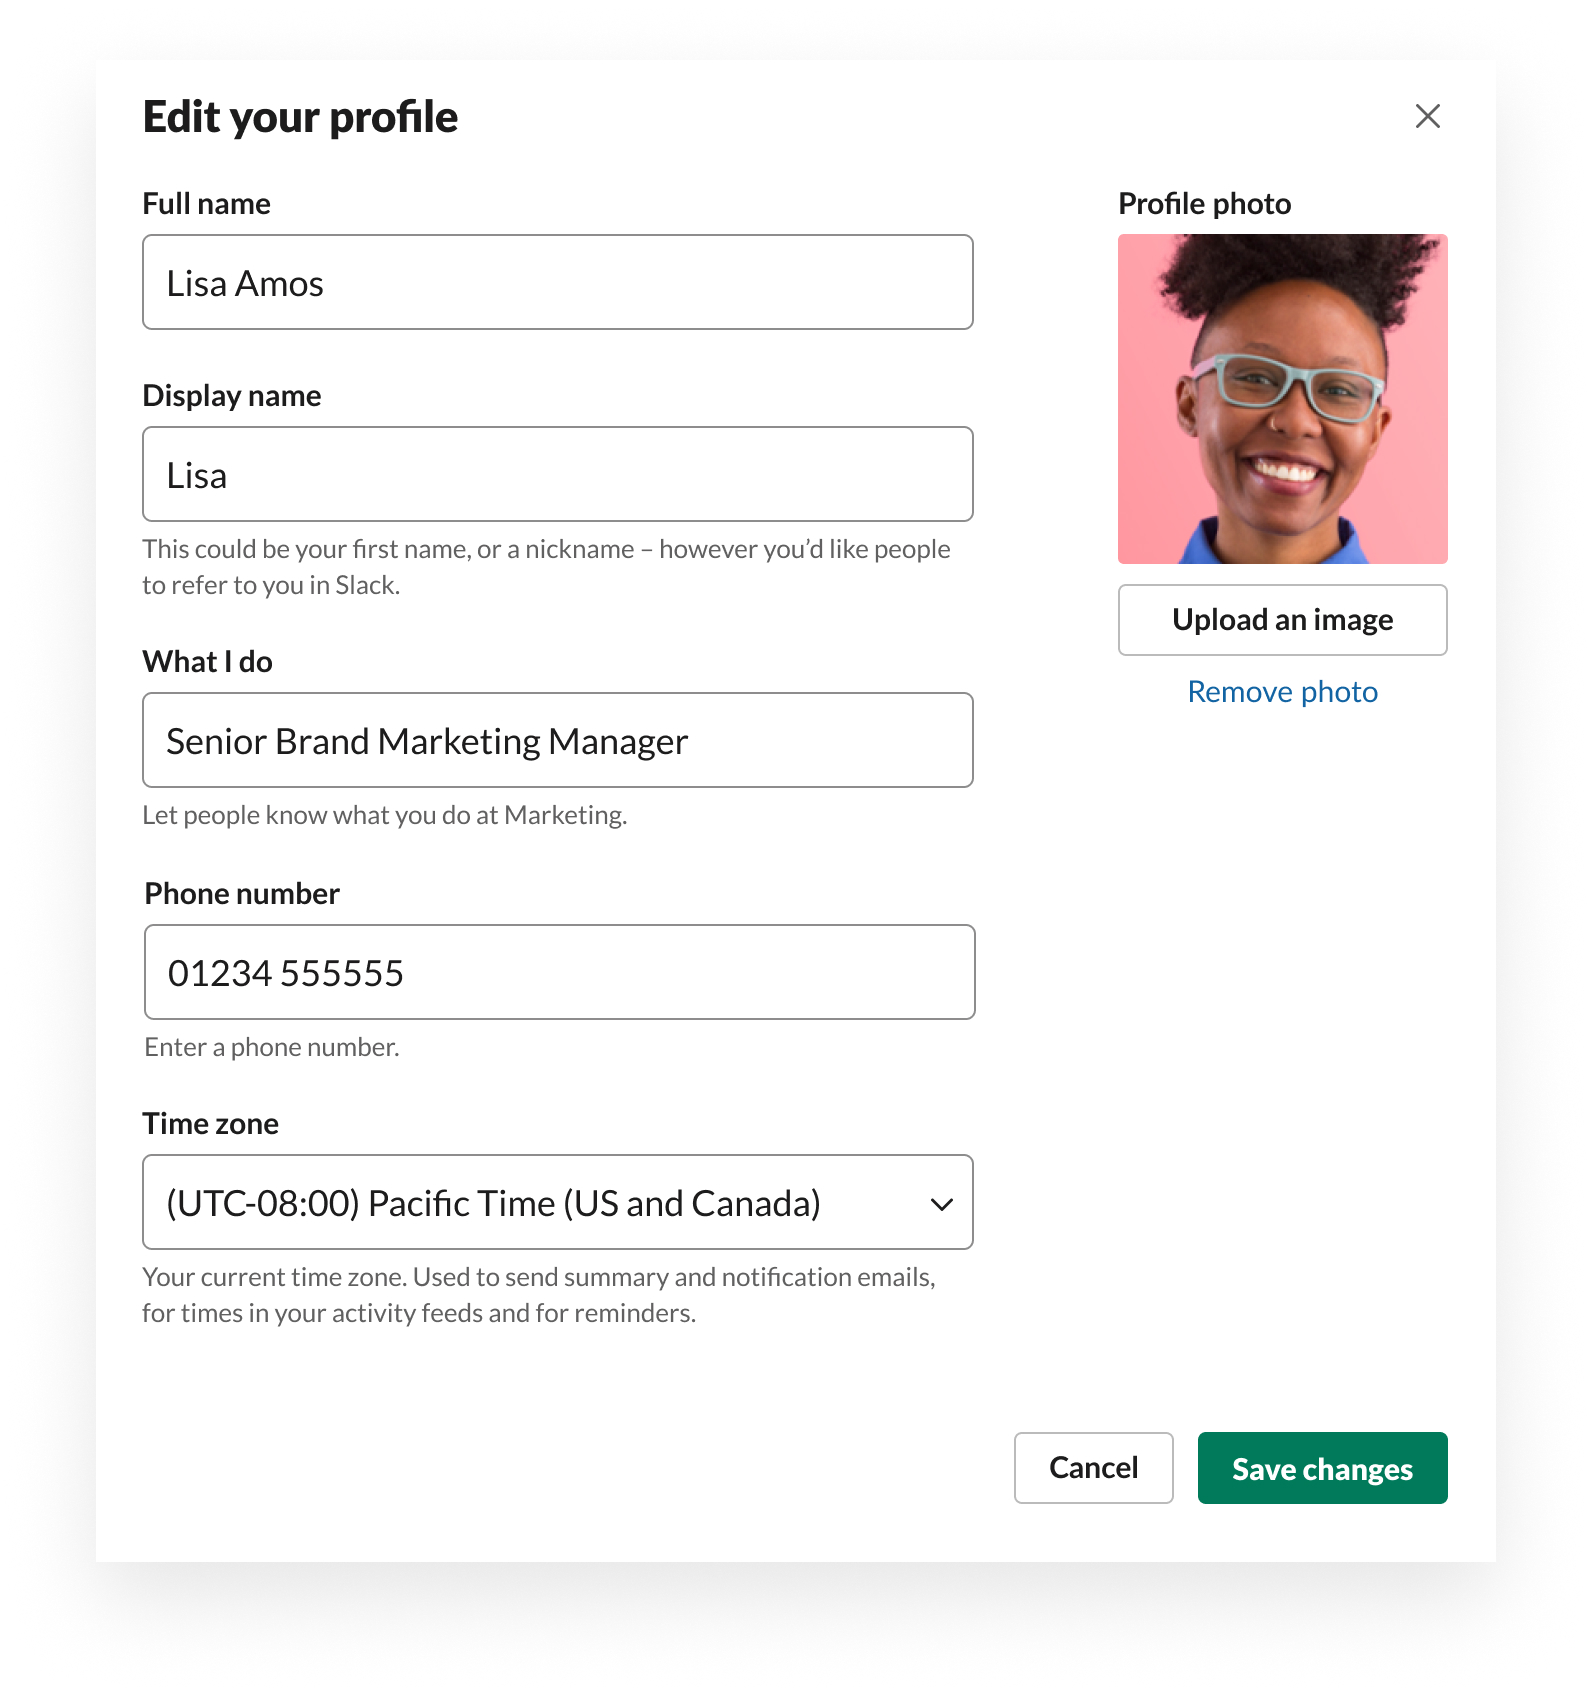 Slack UI showing how to edit your profile including picture, name, title, time zone, and phone number